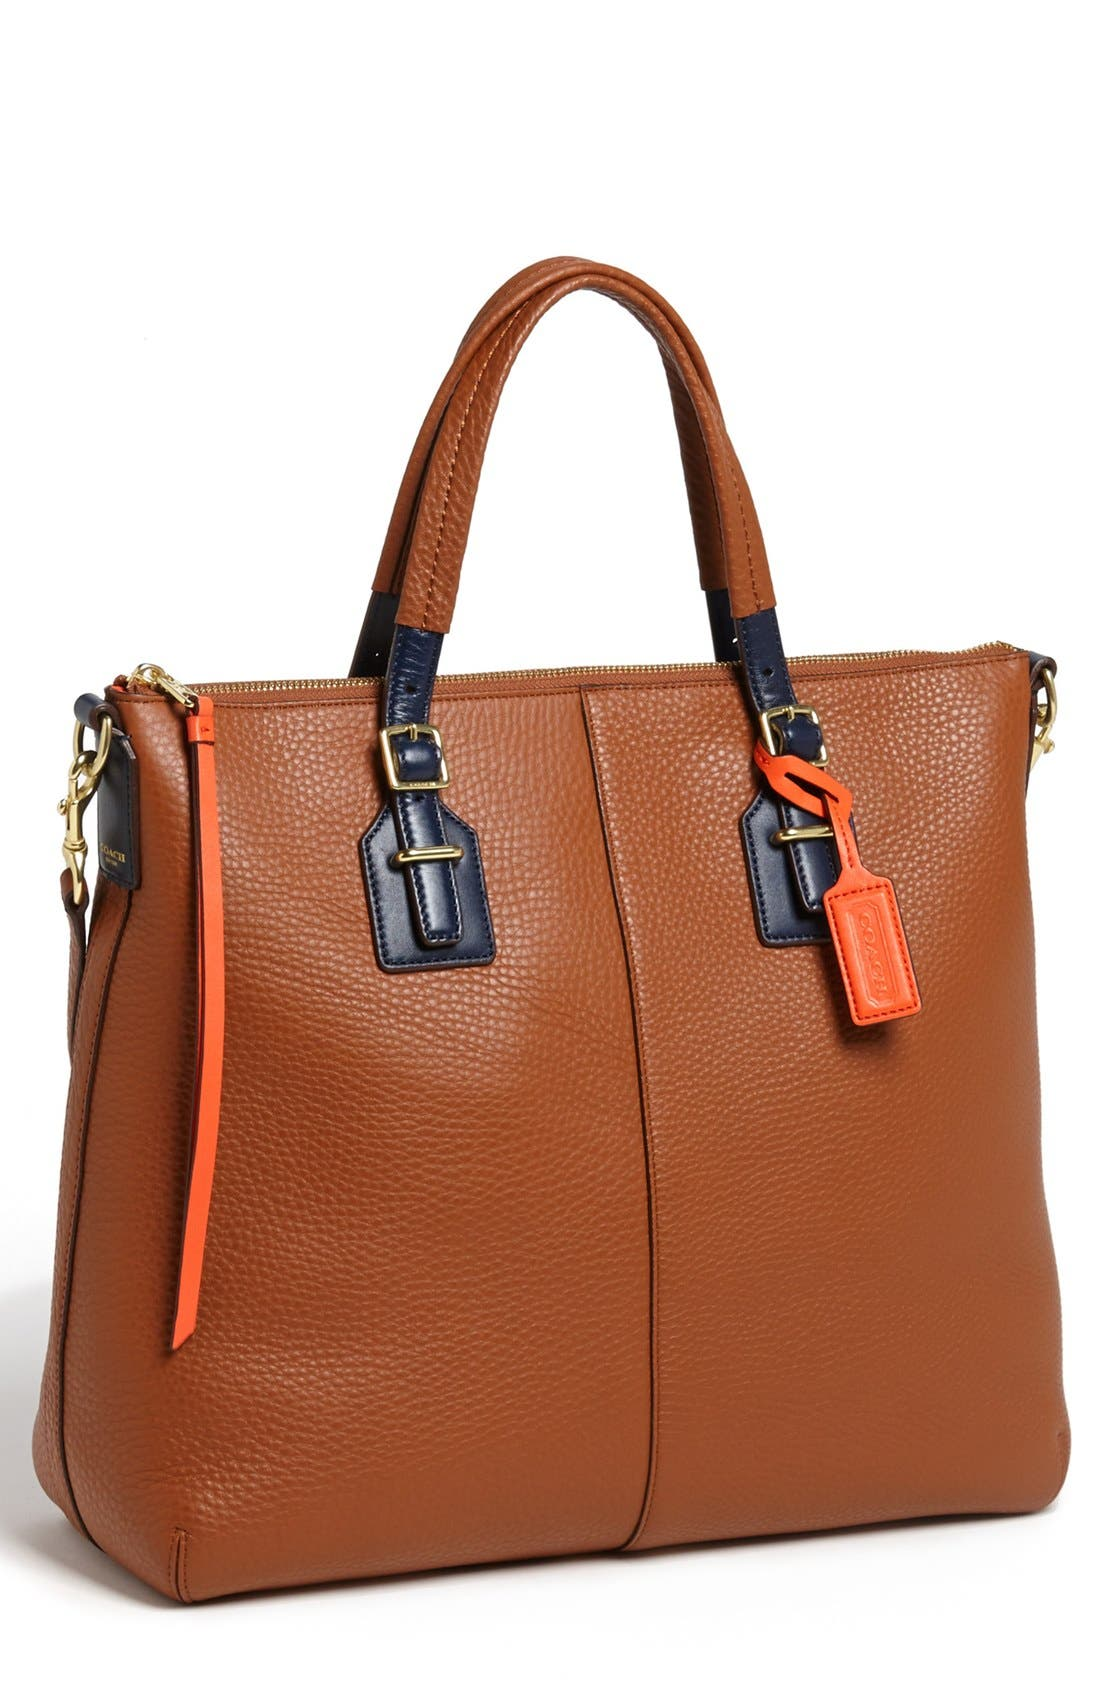 Main Image - COACH 'Legacy Dream - Rory' Leather Satchel